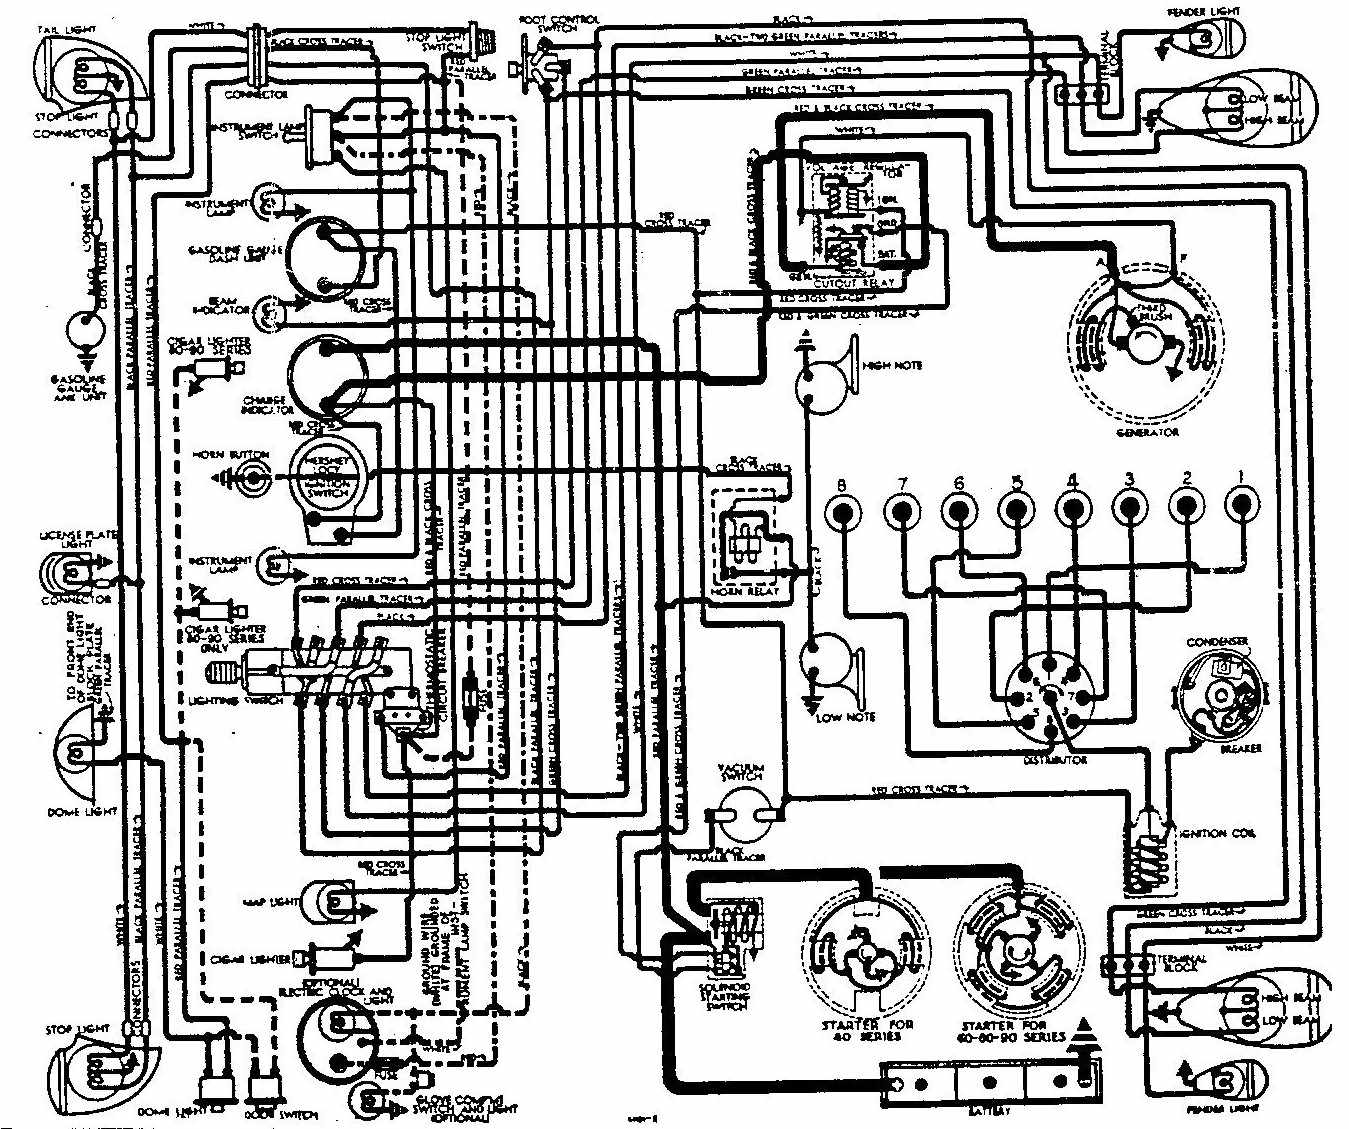 ford wiring diagram electrical wiring diagrams jpg 1349x1129 1956 ford  tractor wiring diagram